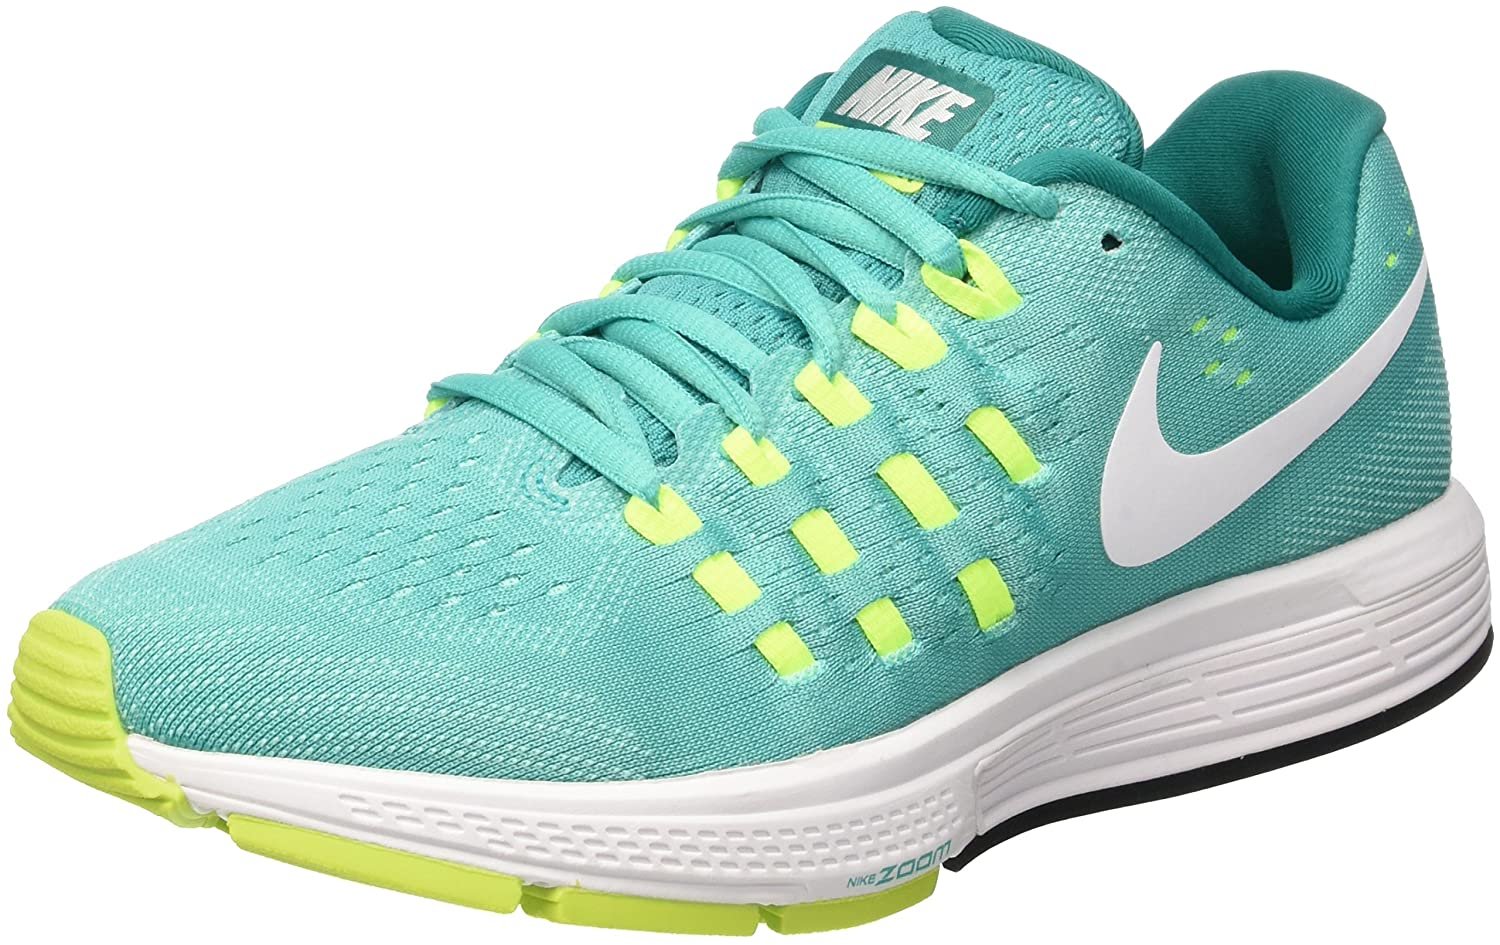 NIKE Women's Air Zoom Vomero 11 Running Shoe B019DTDQQI 6 B(M) US|Jade/White Volt Rio Teal